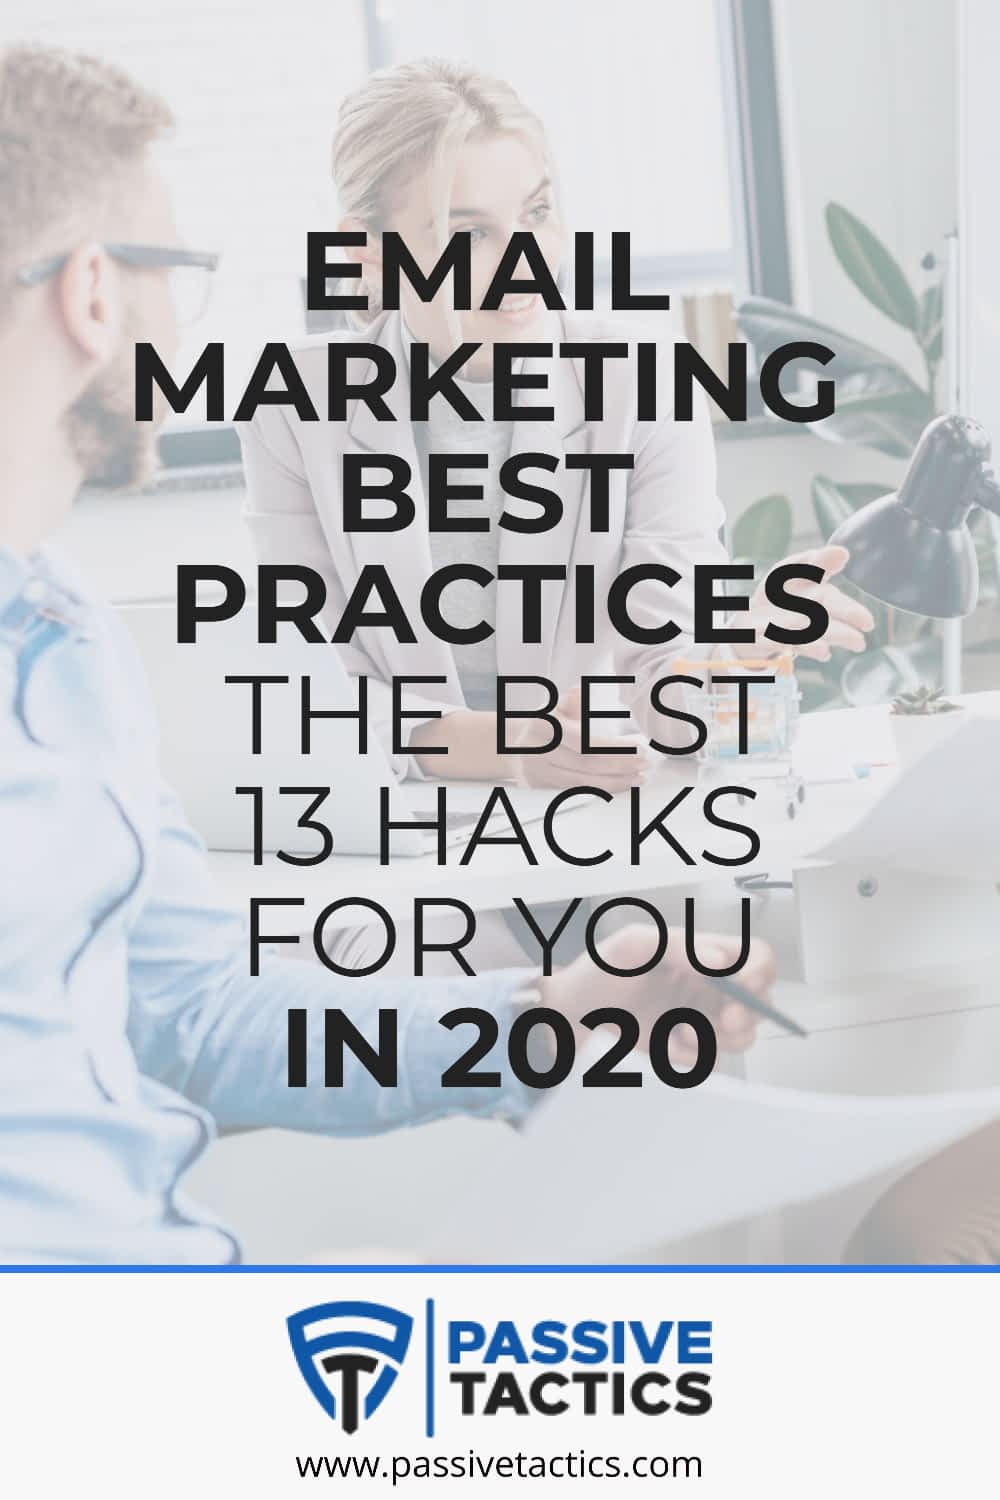 Best Email Marketing Practices: The Best 13 Hacks For You In 2021